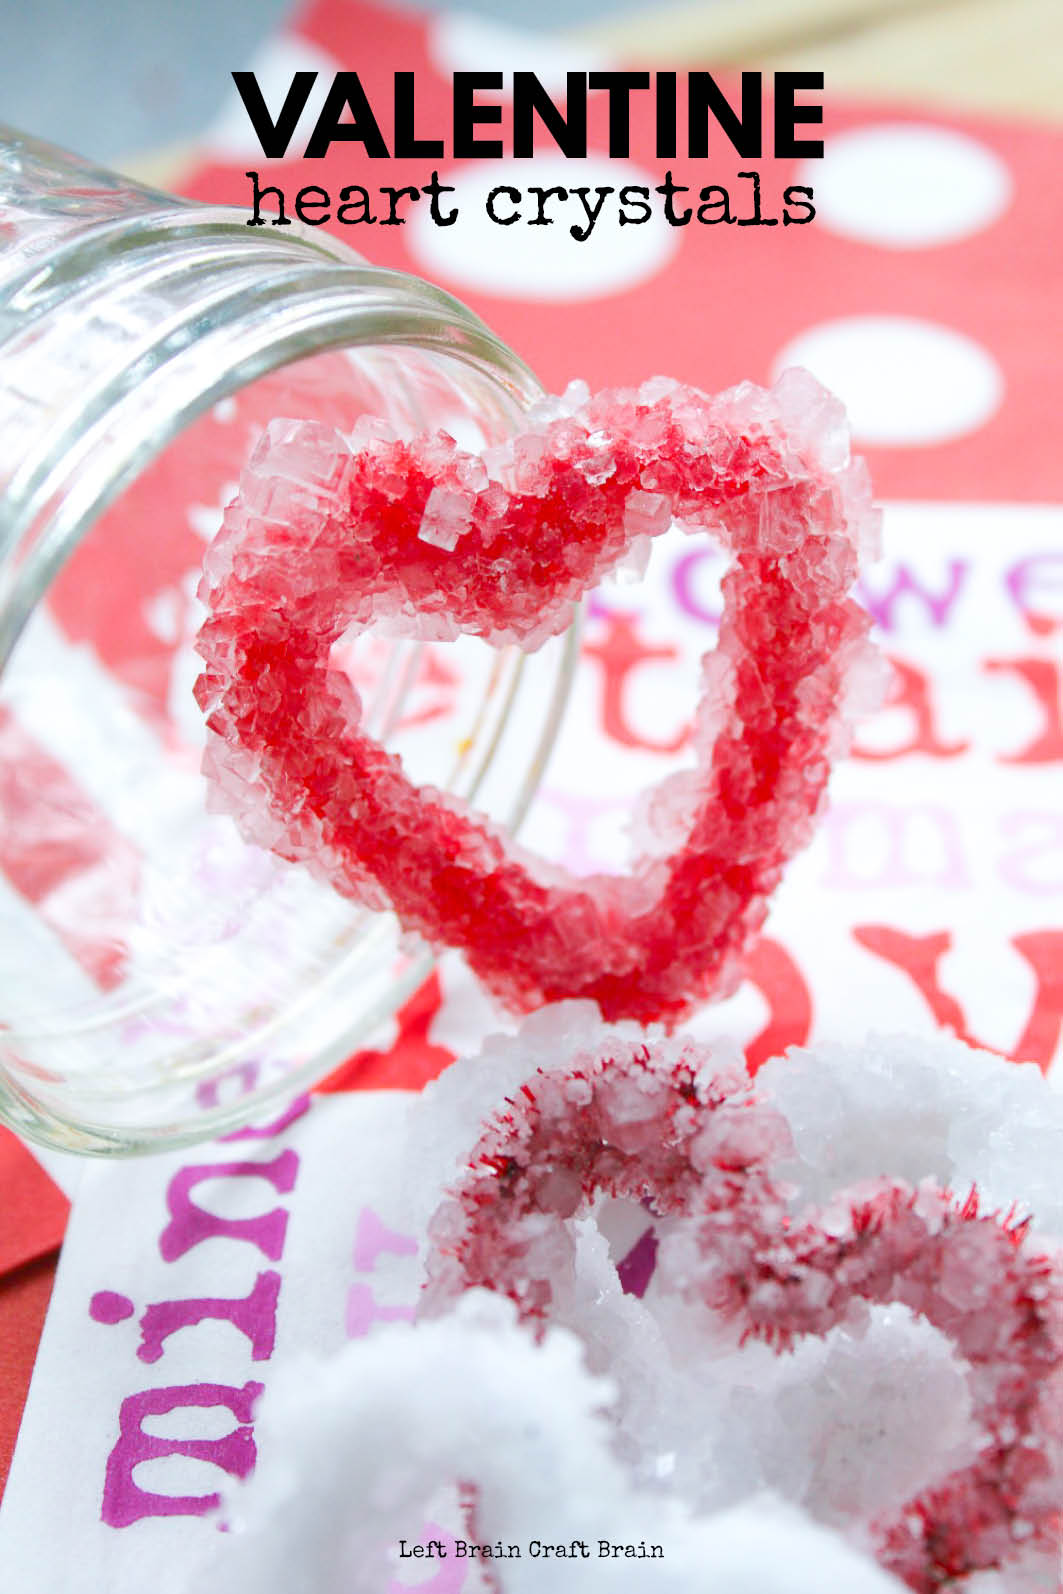 Grow these lovely Valentine Heart Borax Crystals for a fun science experiment this February. Kids will love customizing their hearts and watching the crystals grow.